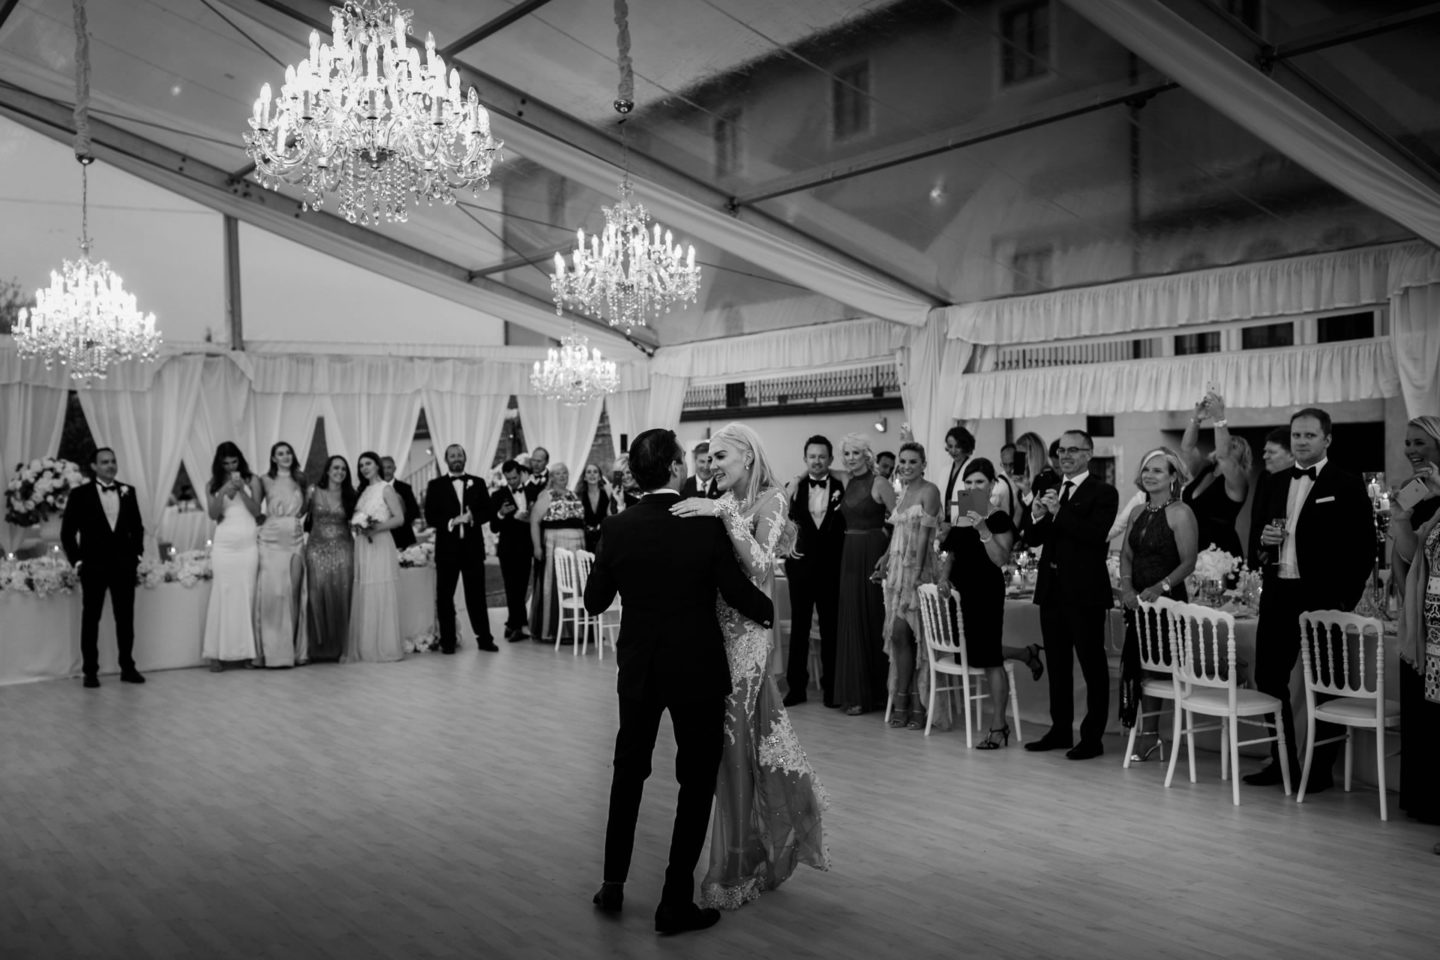 Chandeliers :: Exciting wedding in the countryside of Siena :: Luxury wedding photography - 60 :: Chandeliers